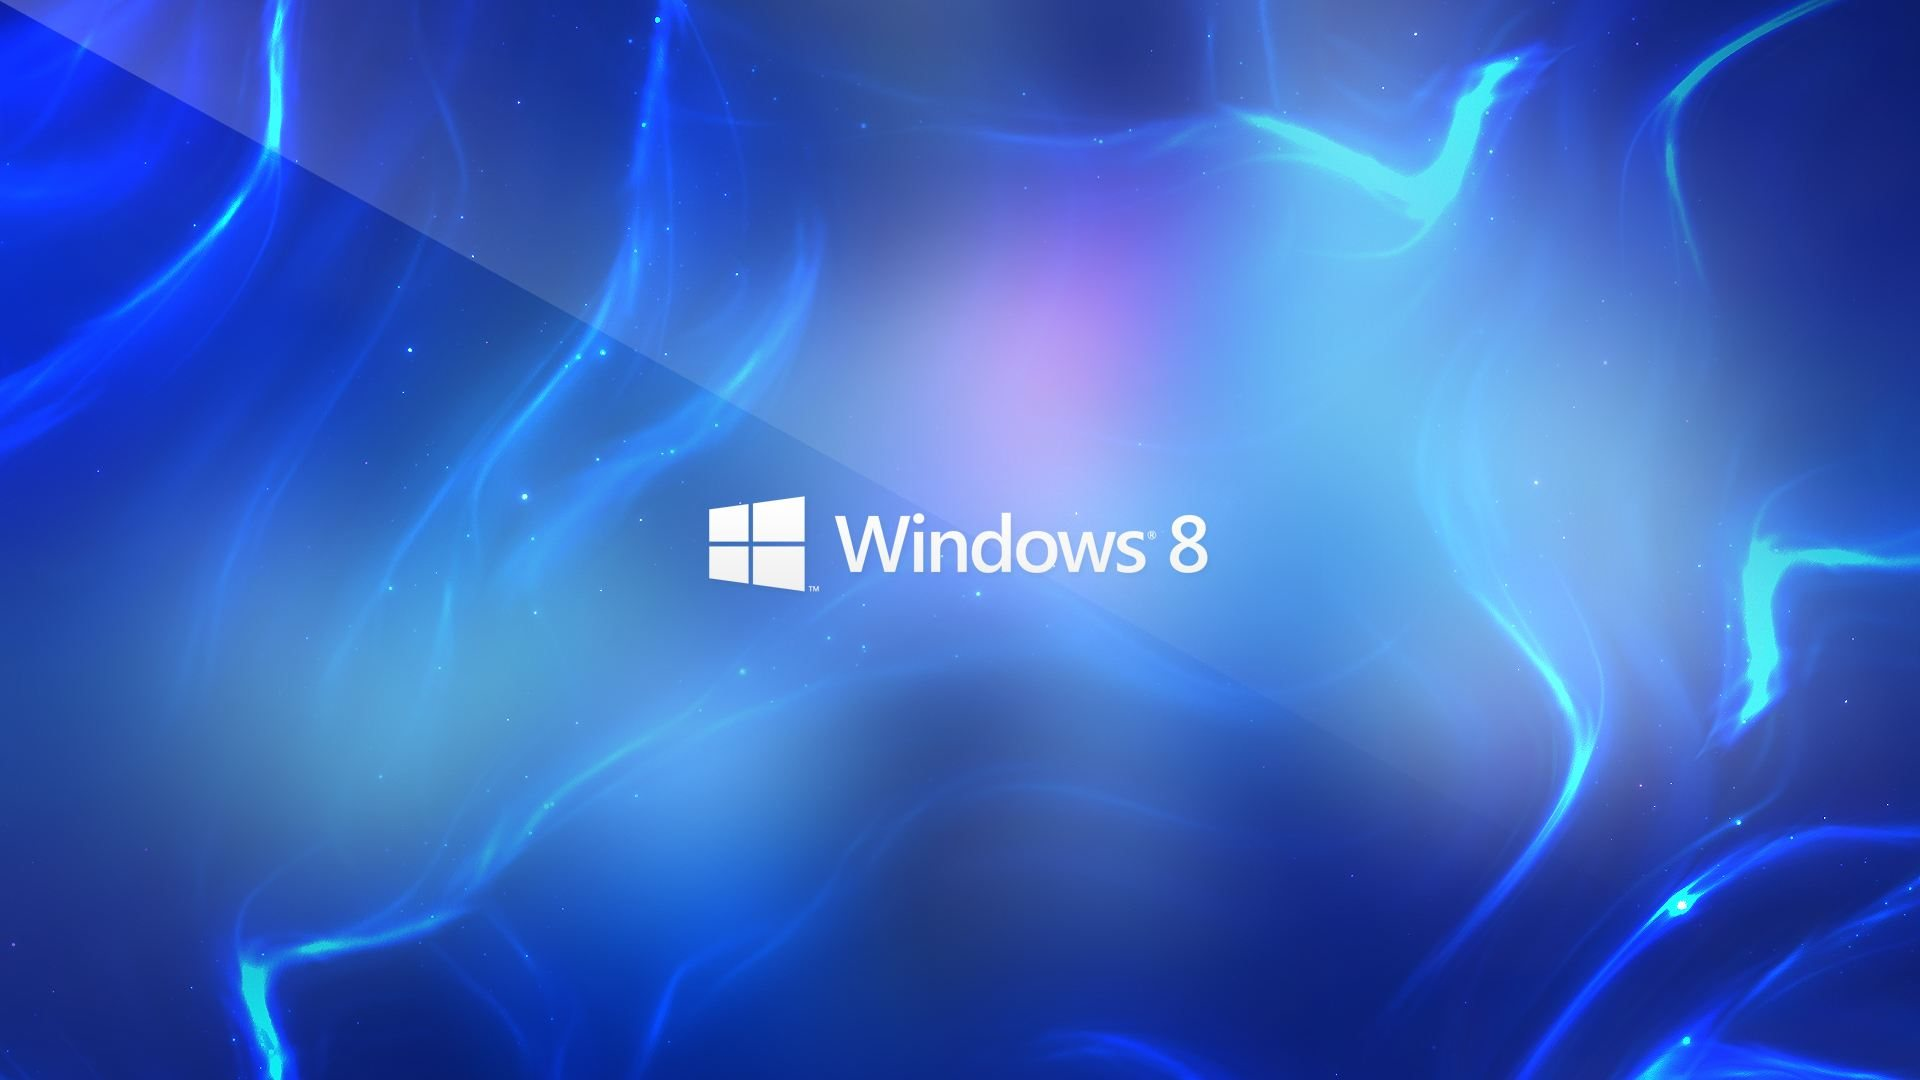 Hd wallpapers for windows 8 1